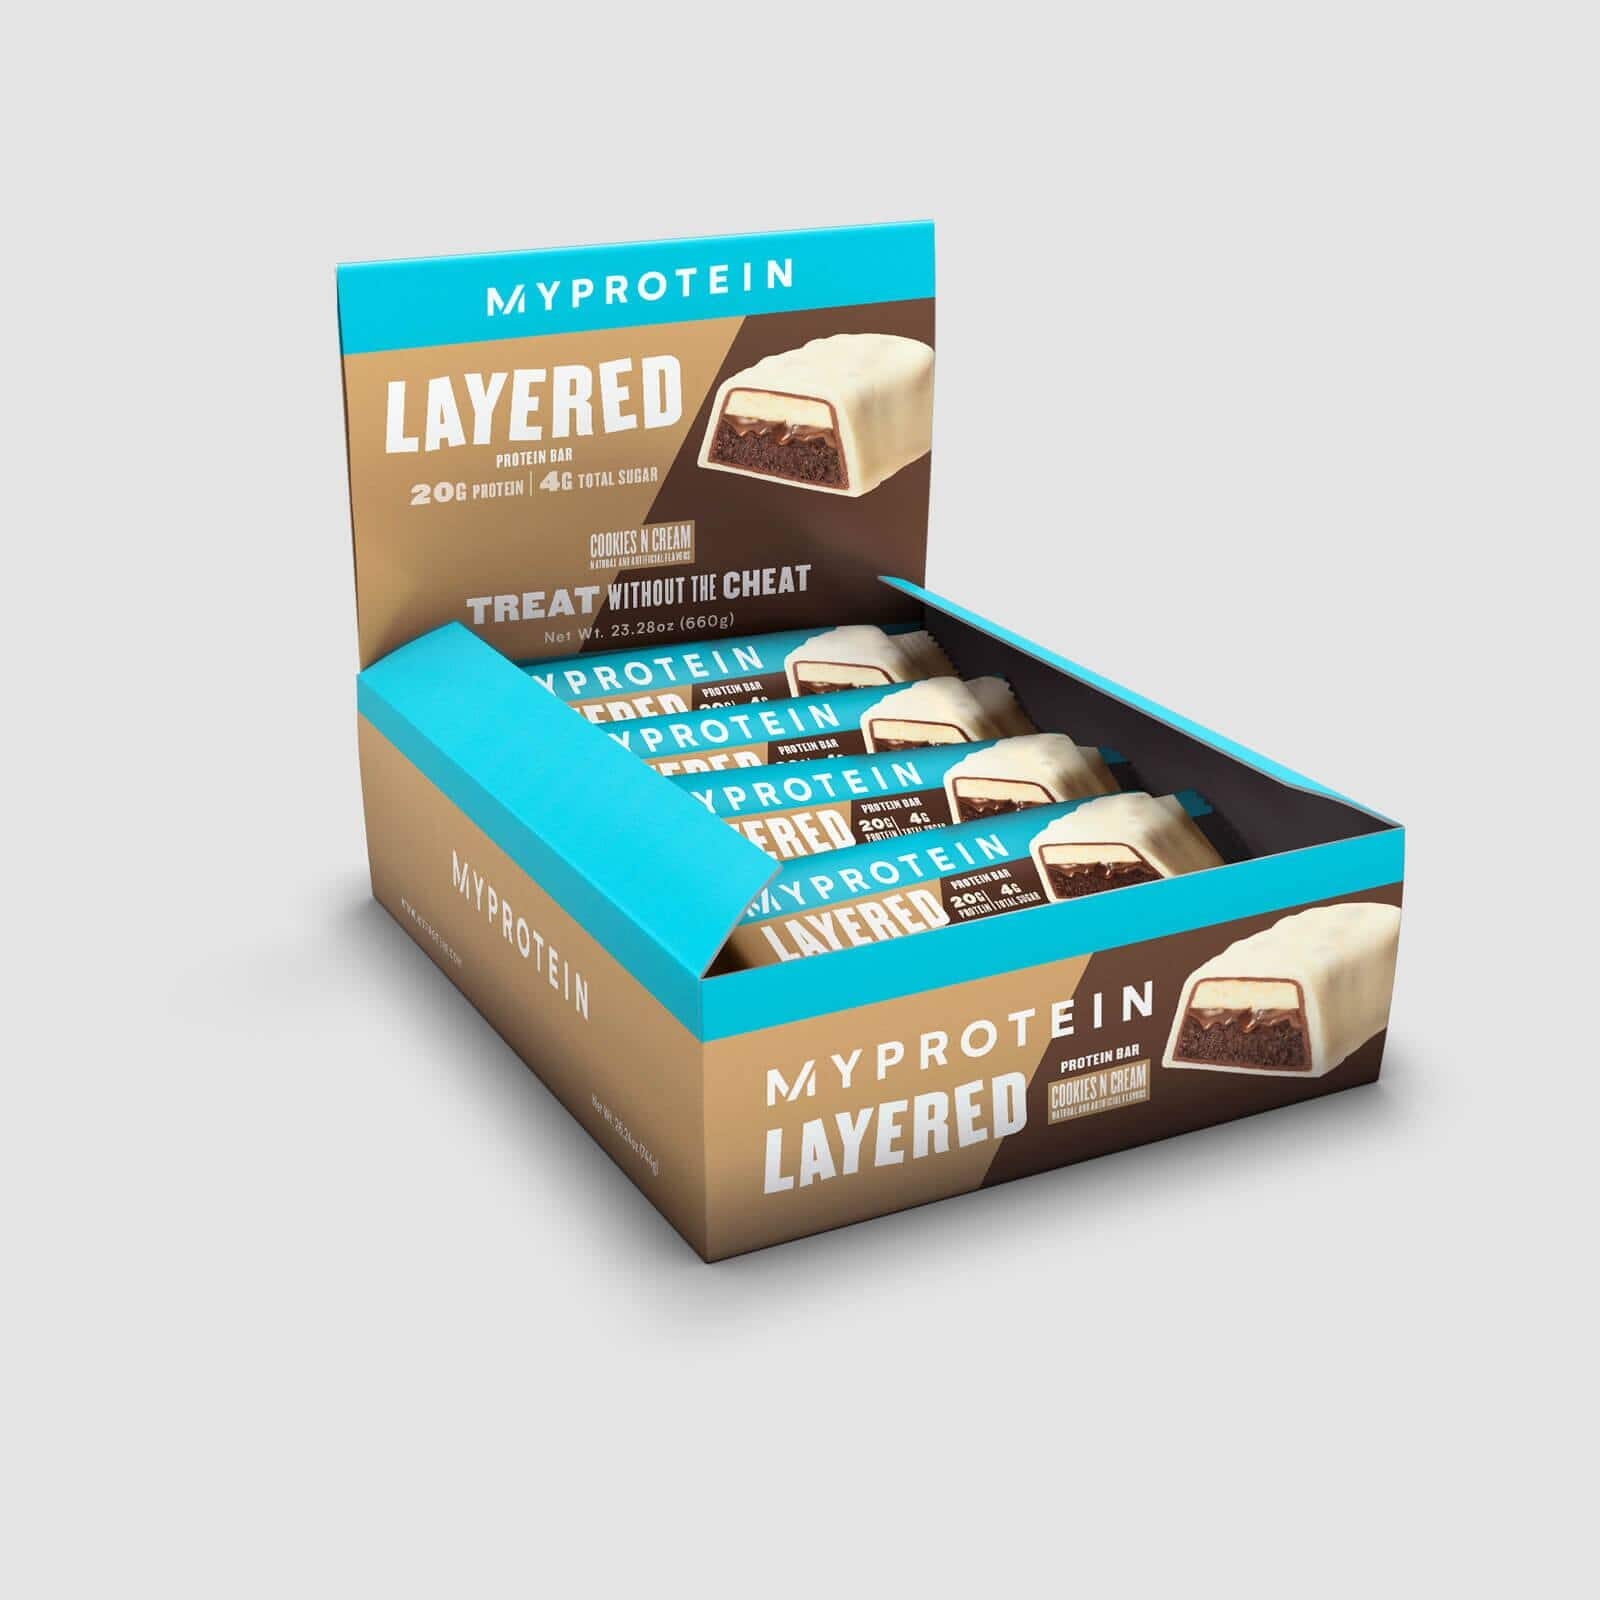 Myprotein Layered Bar Box of 12 (Cookies & Cream) only $13.99 with Free Shipping